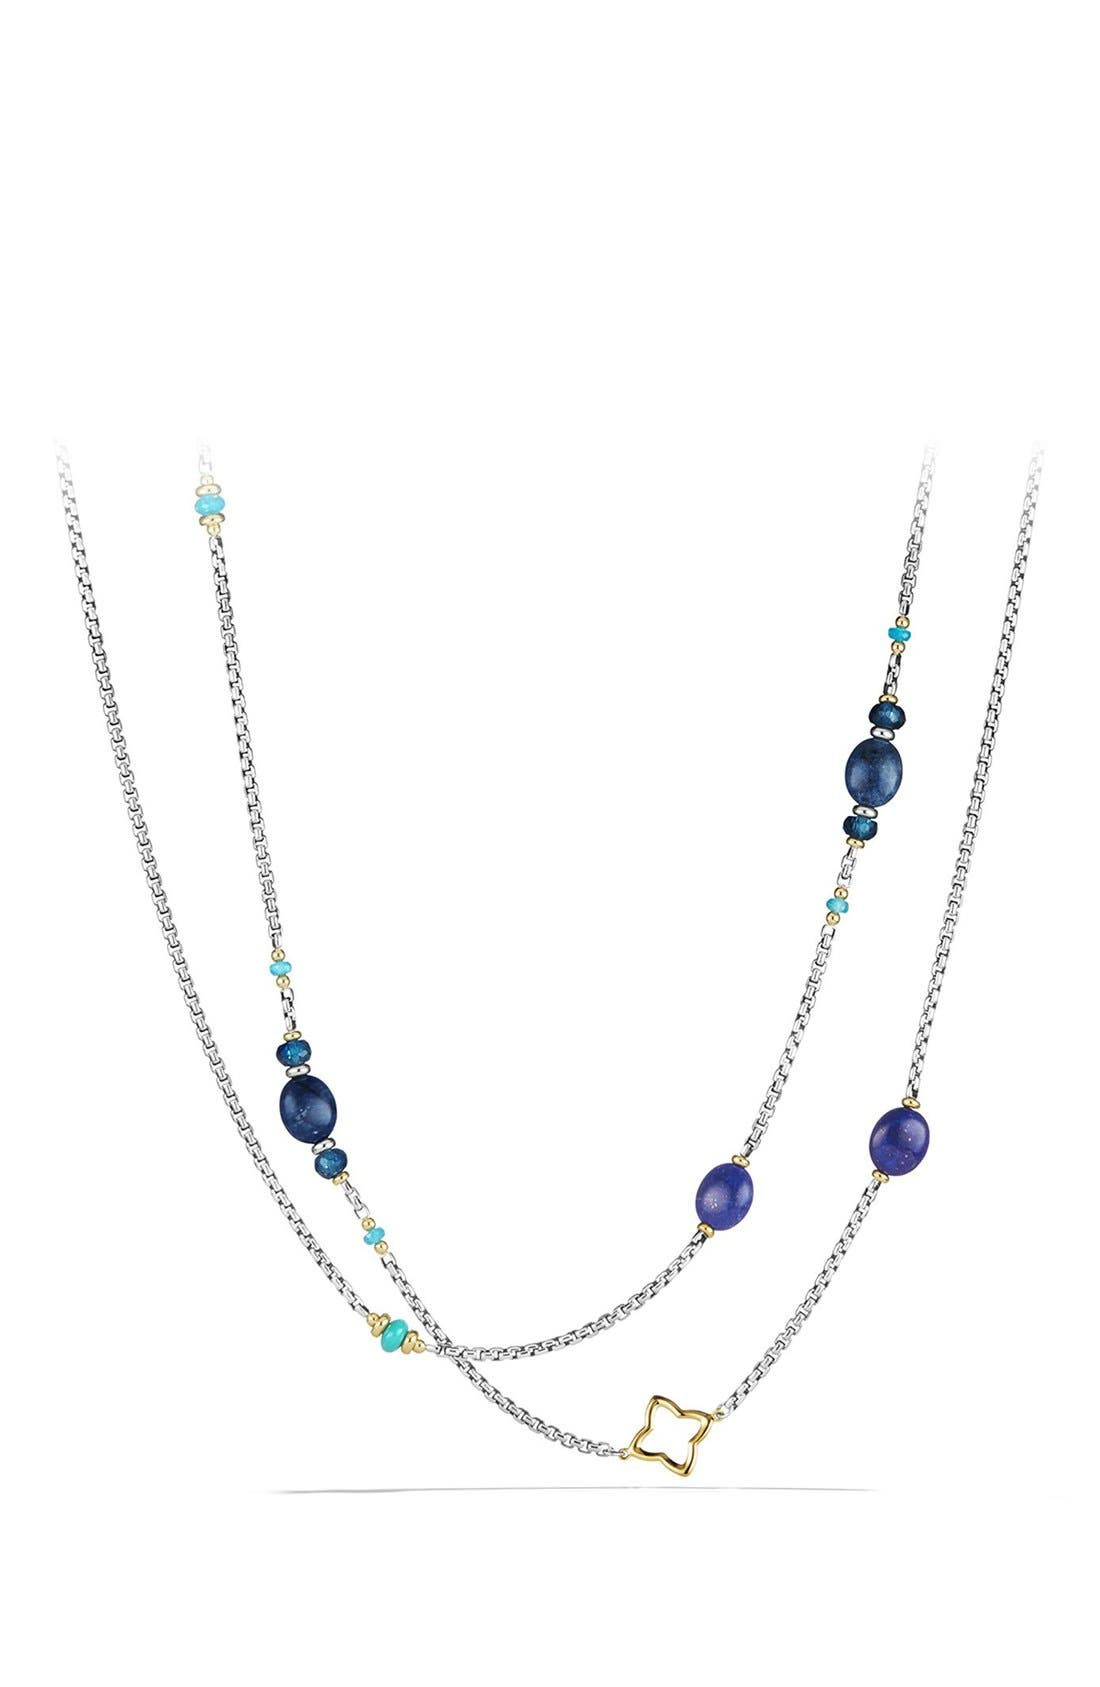 'Bead and Chain' Necklace,                             Main thumbnail 1, color,                             SILVER/ GOLD/ TURQUOISE